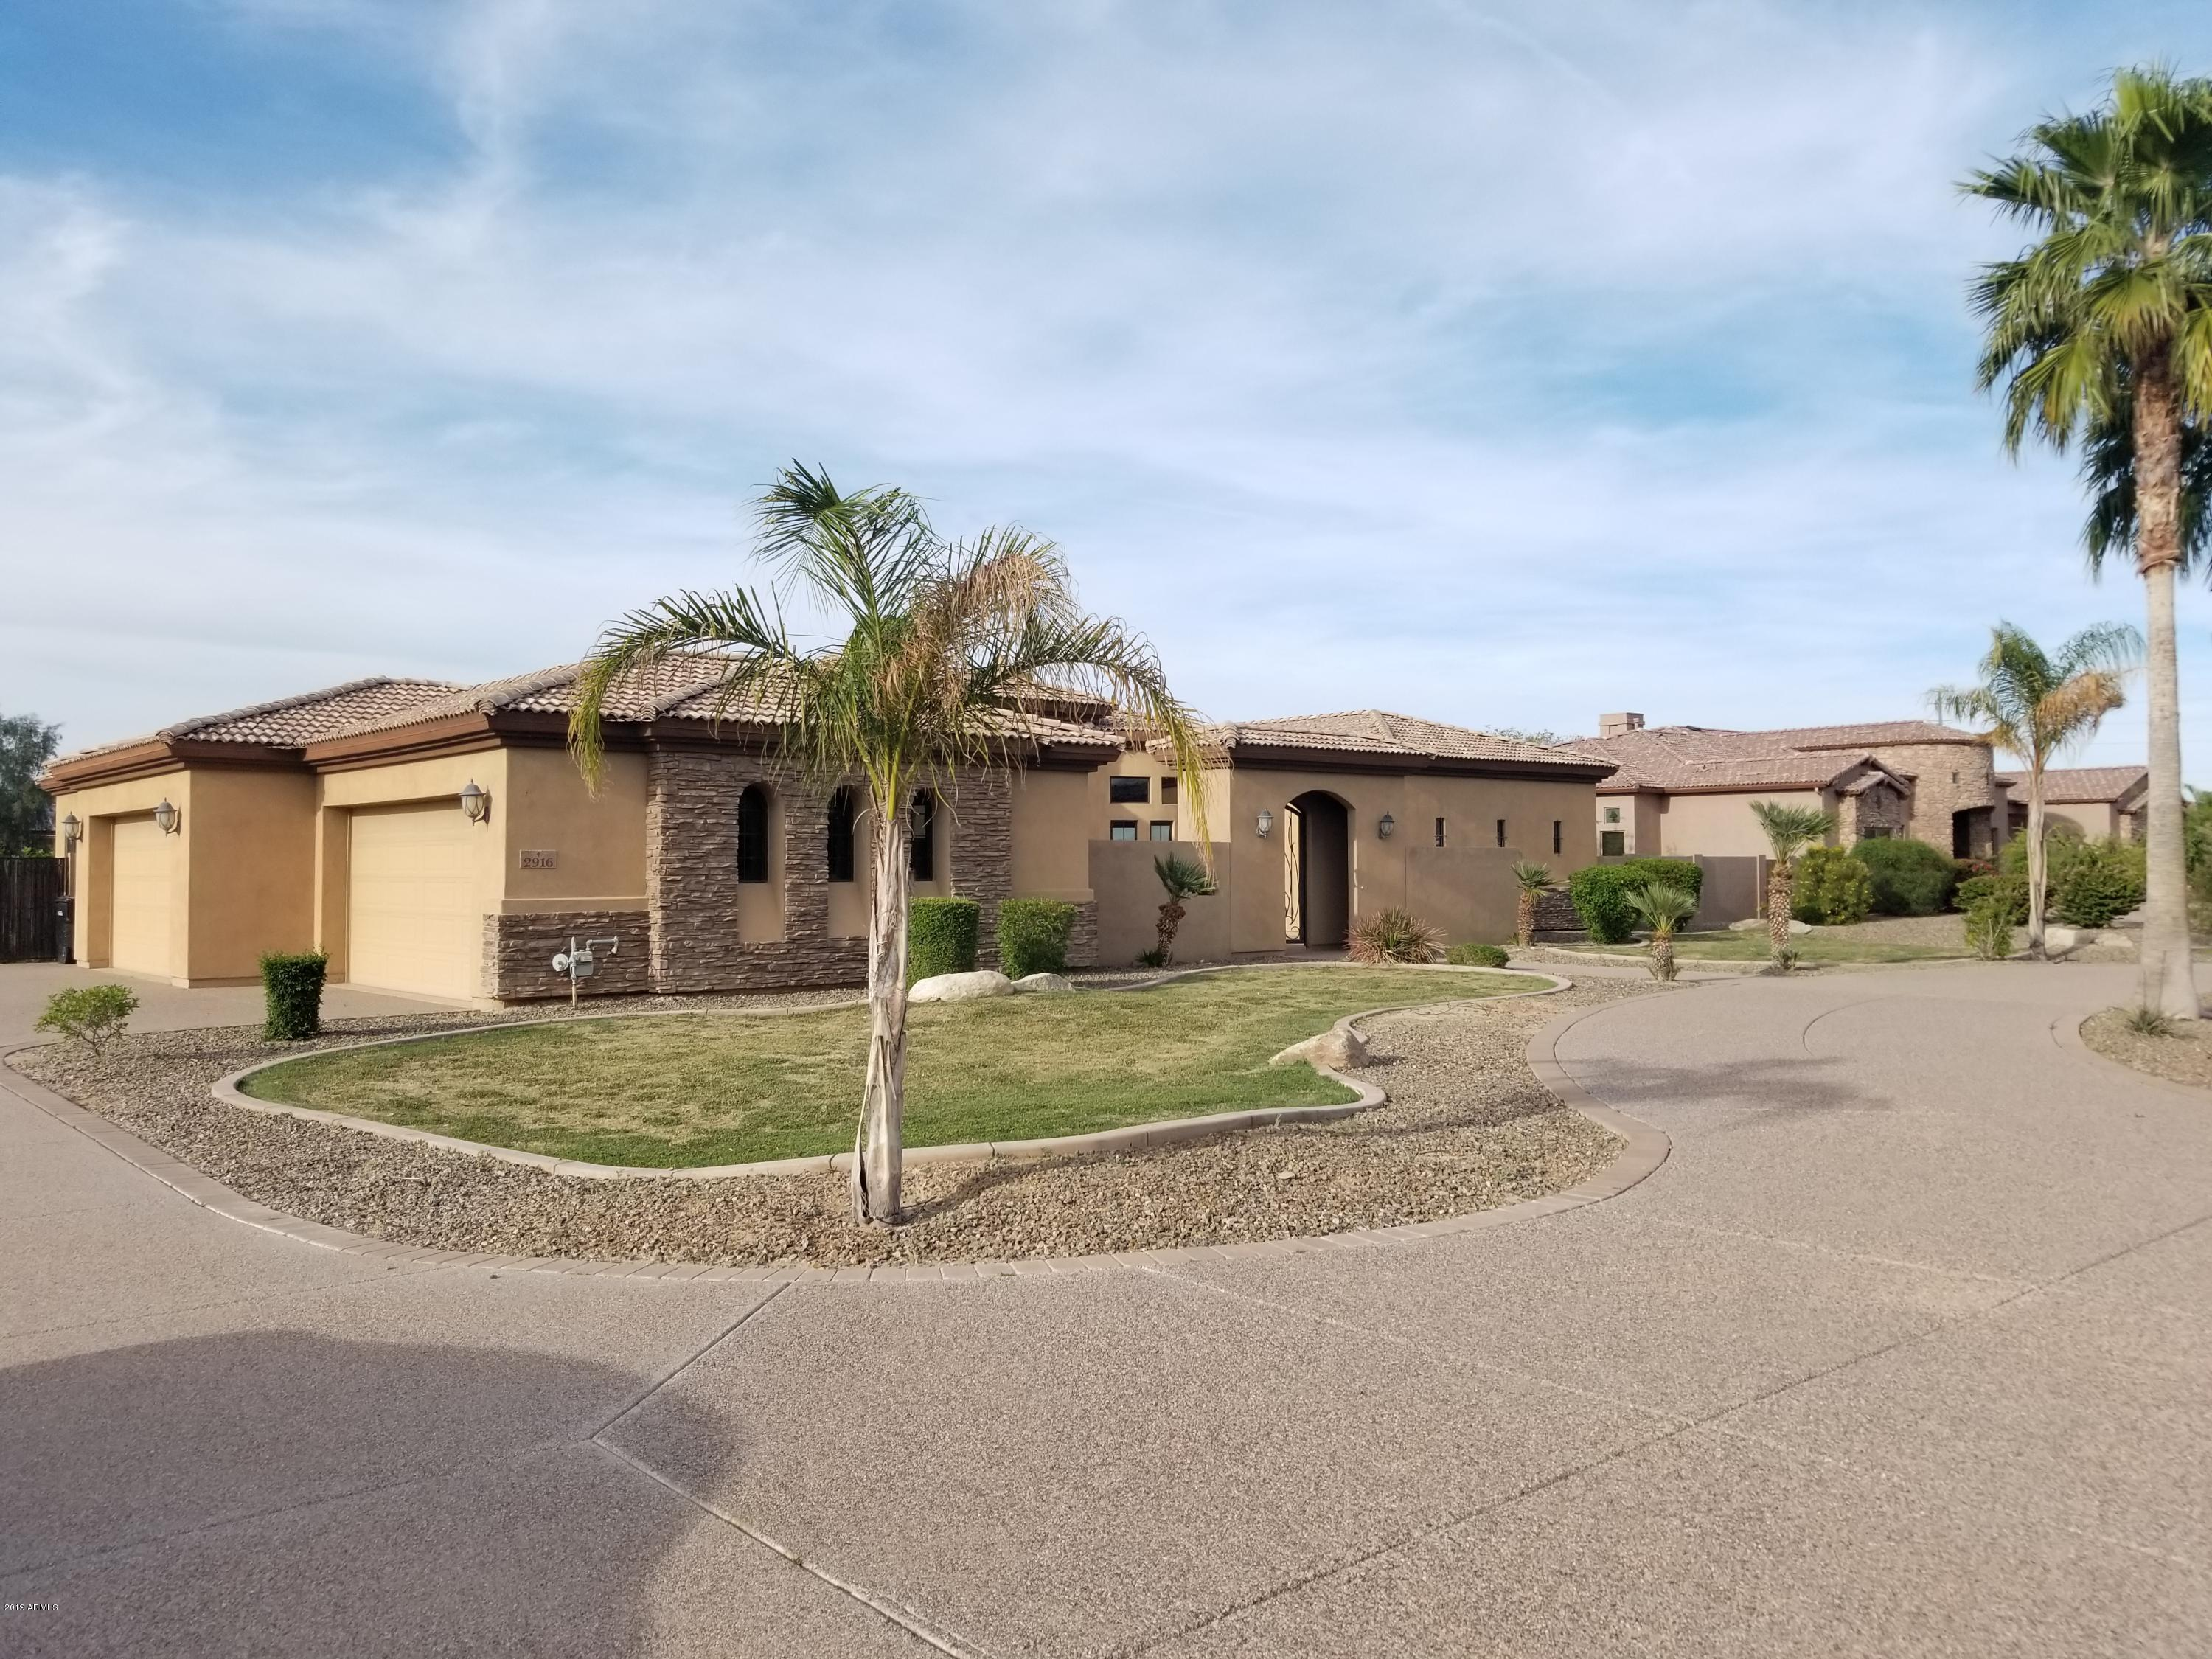 Photo of 2916 E ARROWHEAD TRAIL Trail, Gilbert, AZ 85297